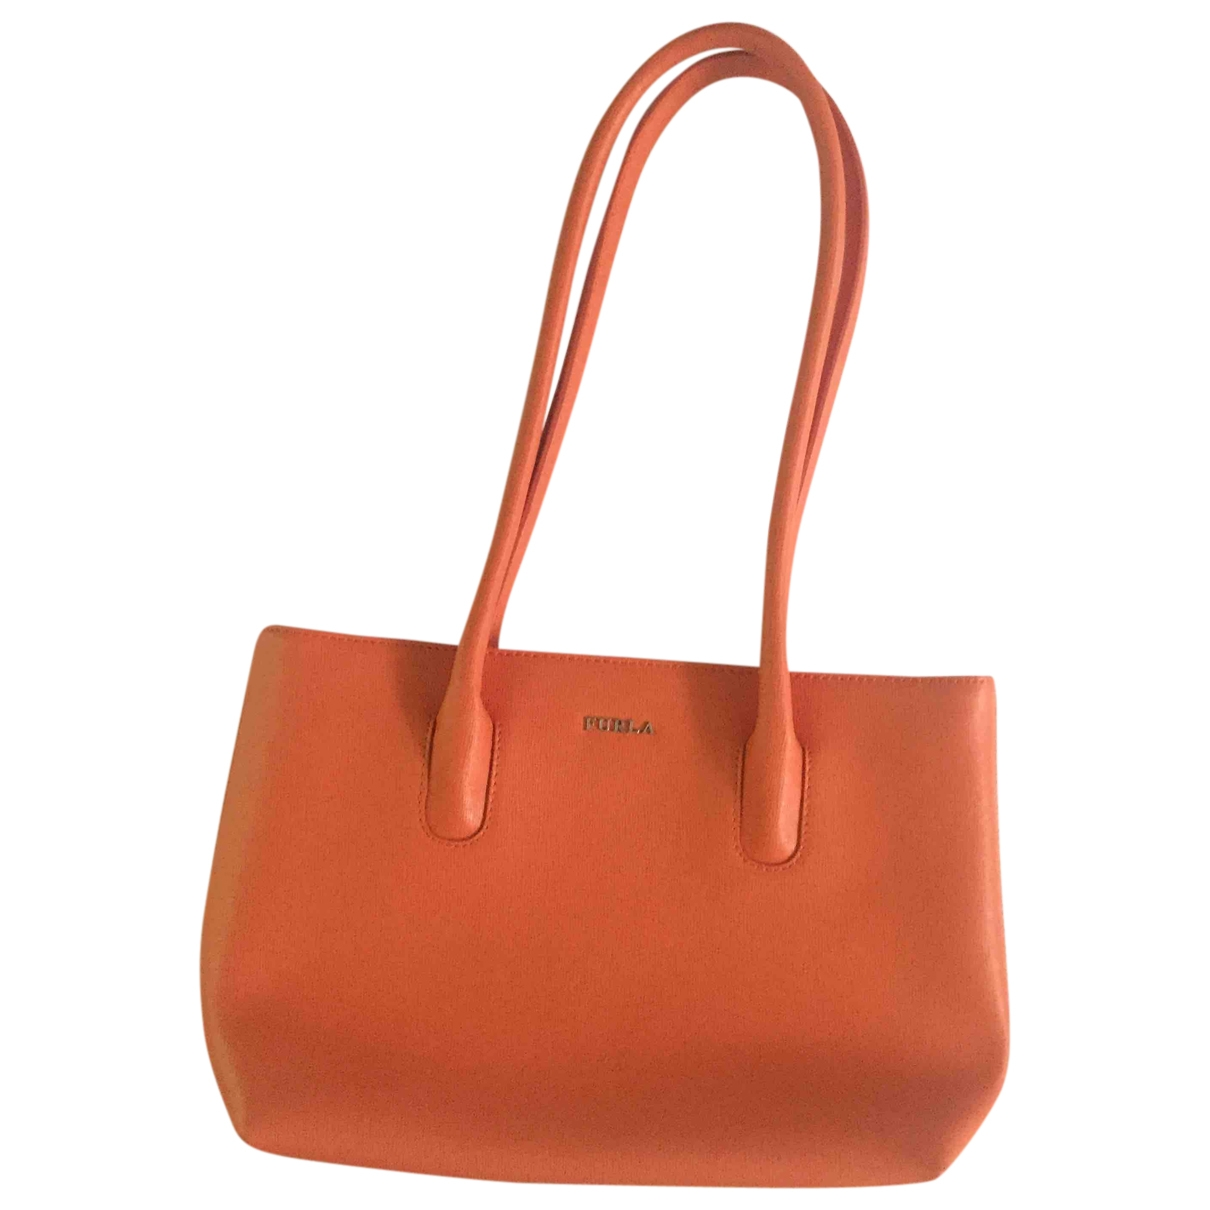 Furla \N Orange Leather handbag for Women \N